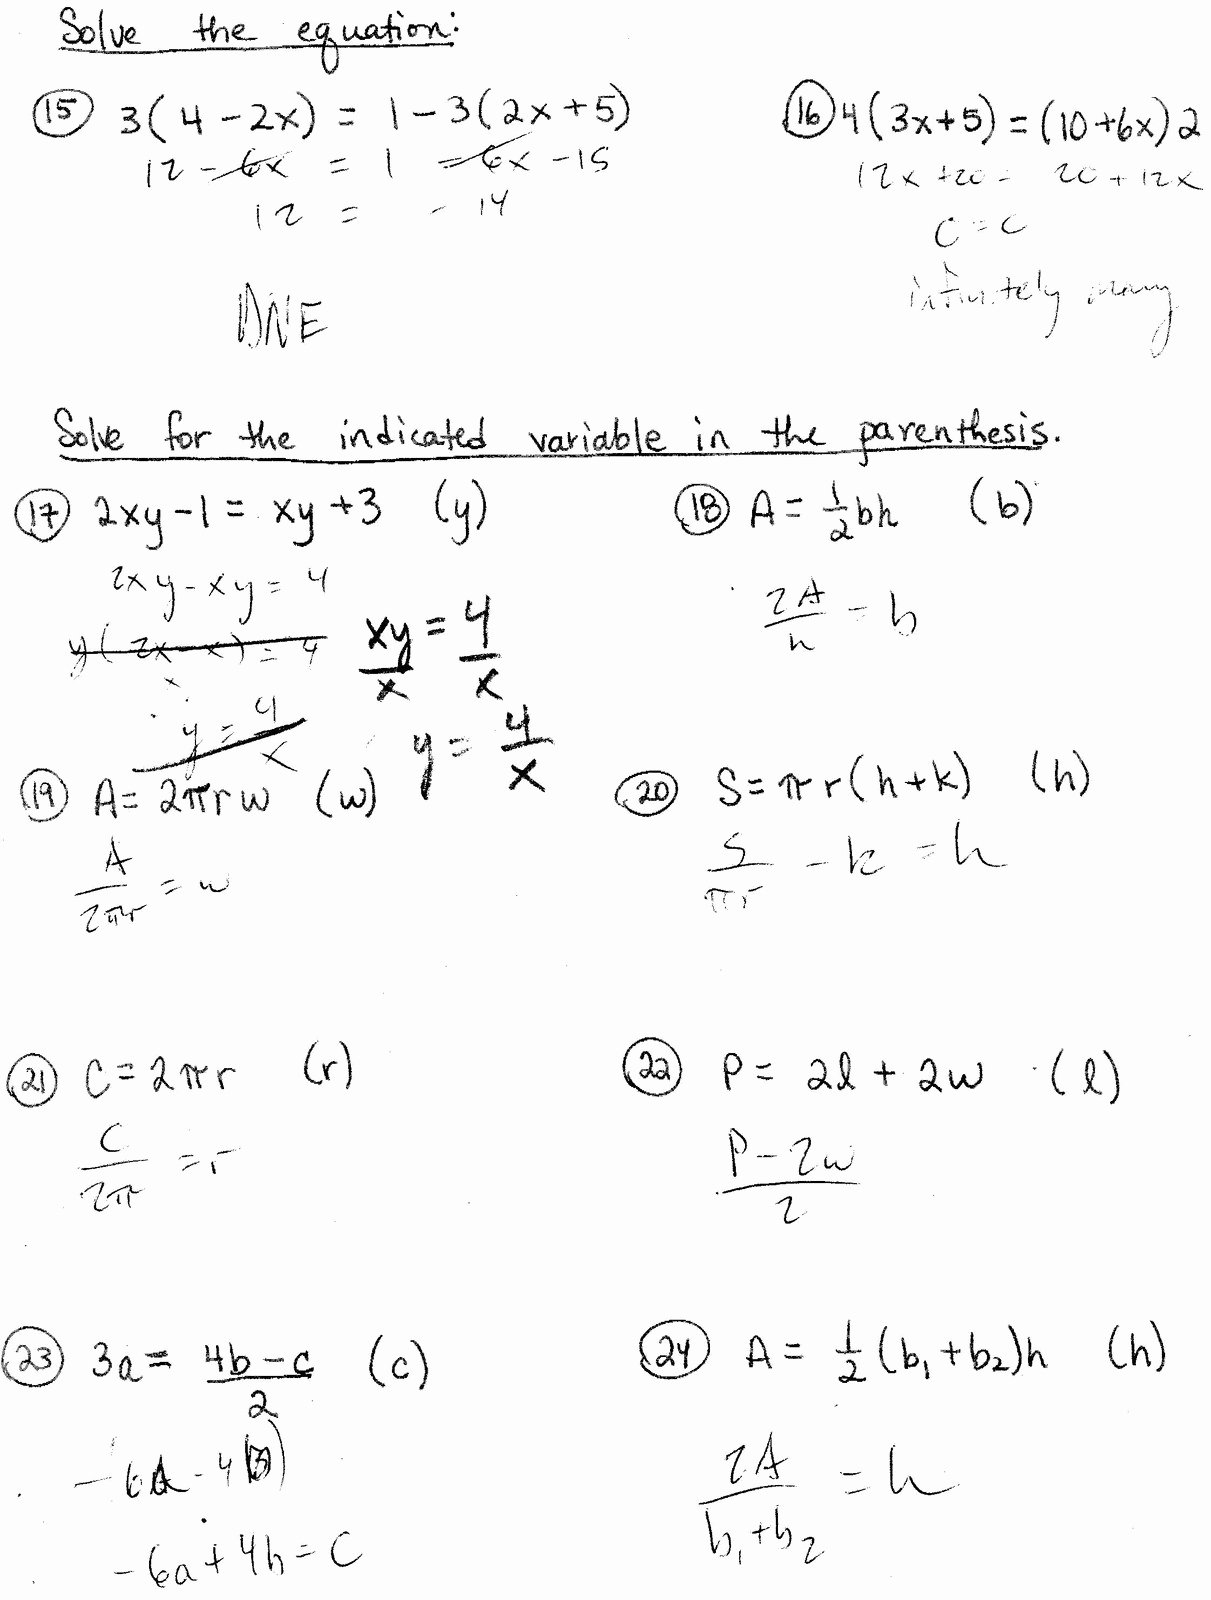 Literal Equations Worksheet Algebra 1 Awesome How to solve A Literal Equation Step by Step Tessshebaylo